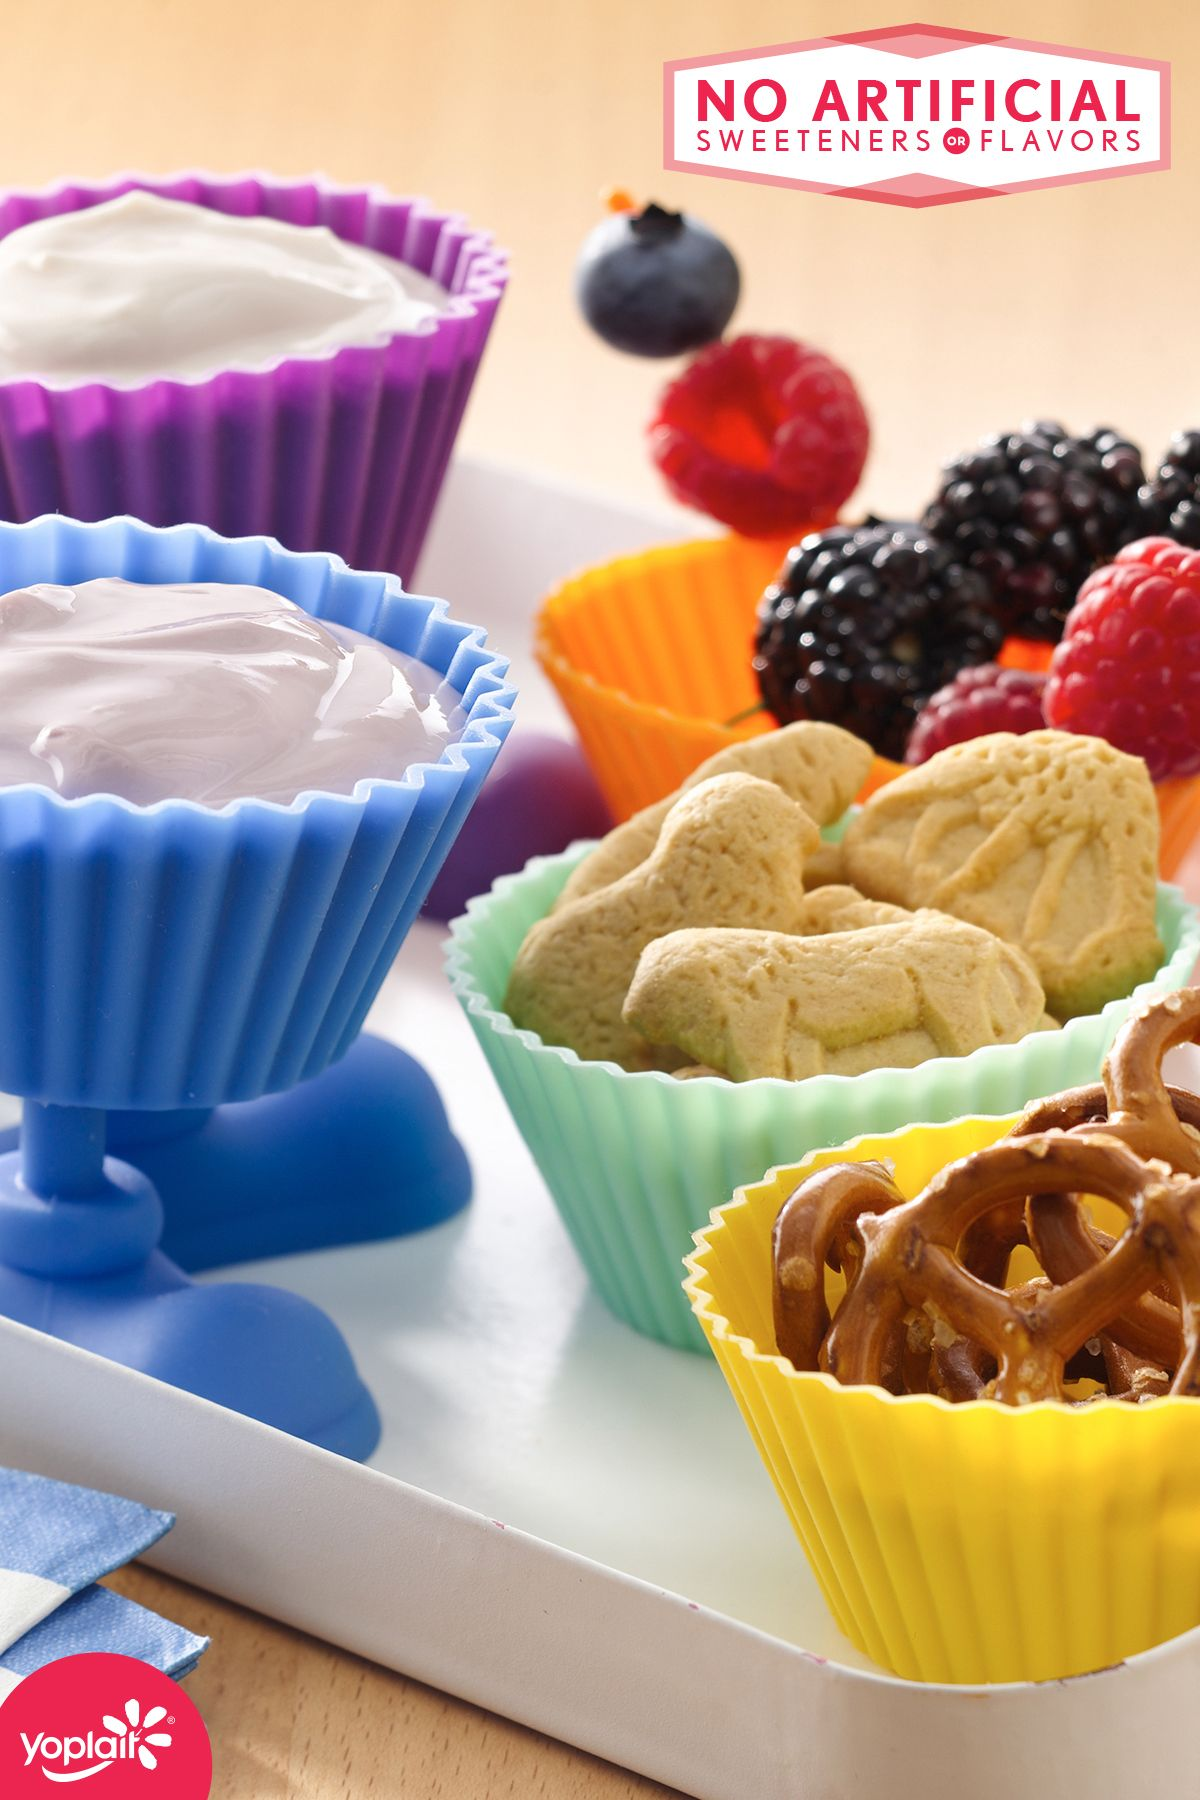 Snack time! Dig into mini portions of Yoplait Original